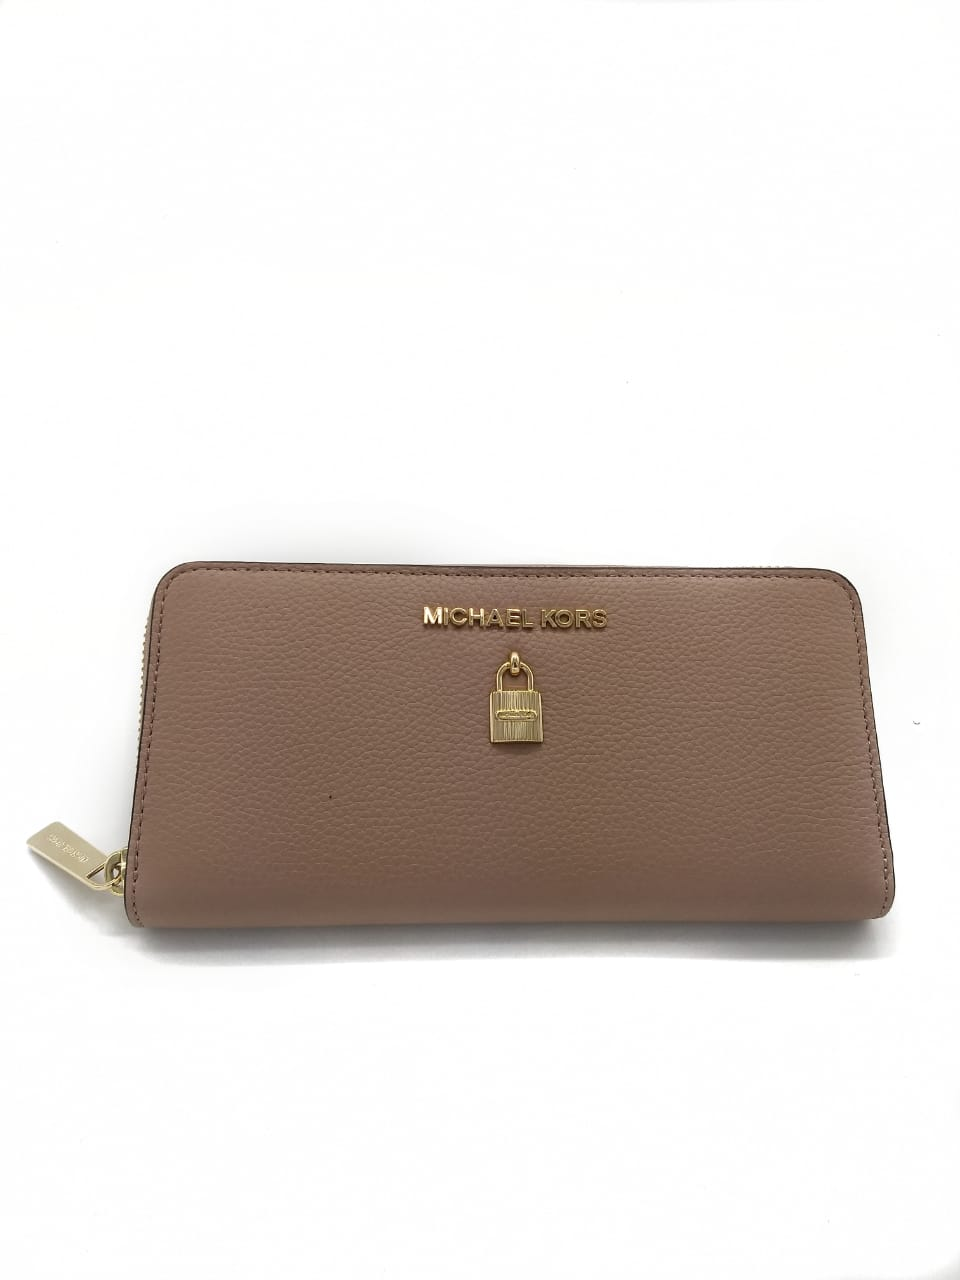 df45fe9dd Carteira Michael Kors - Adele ZA - Nude Rose - By Viana Shop